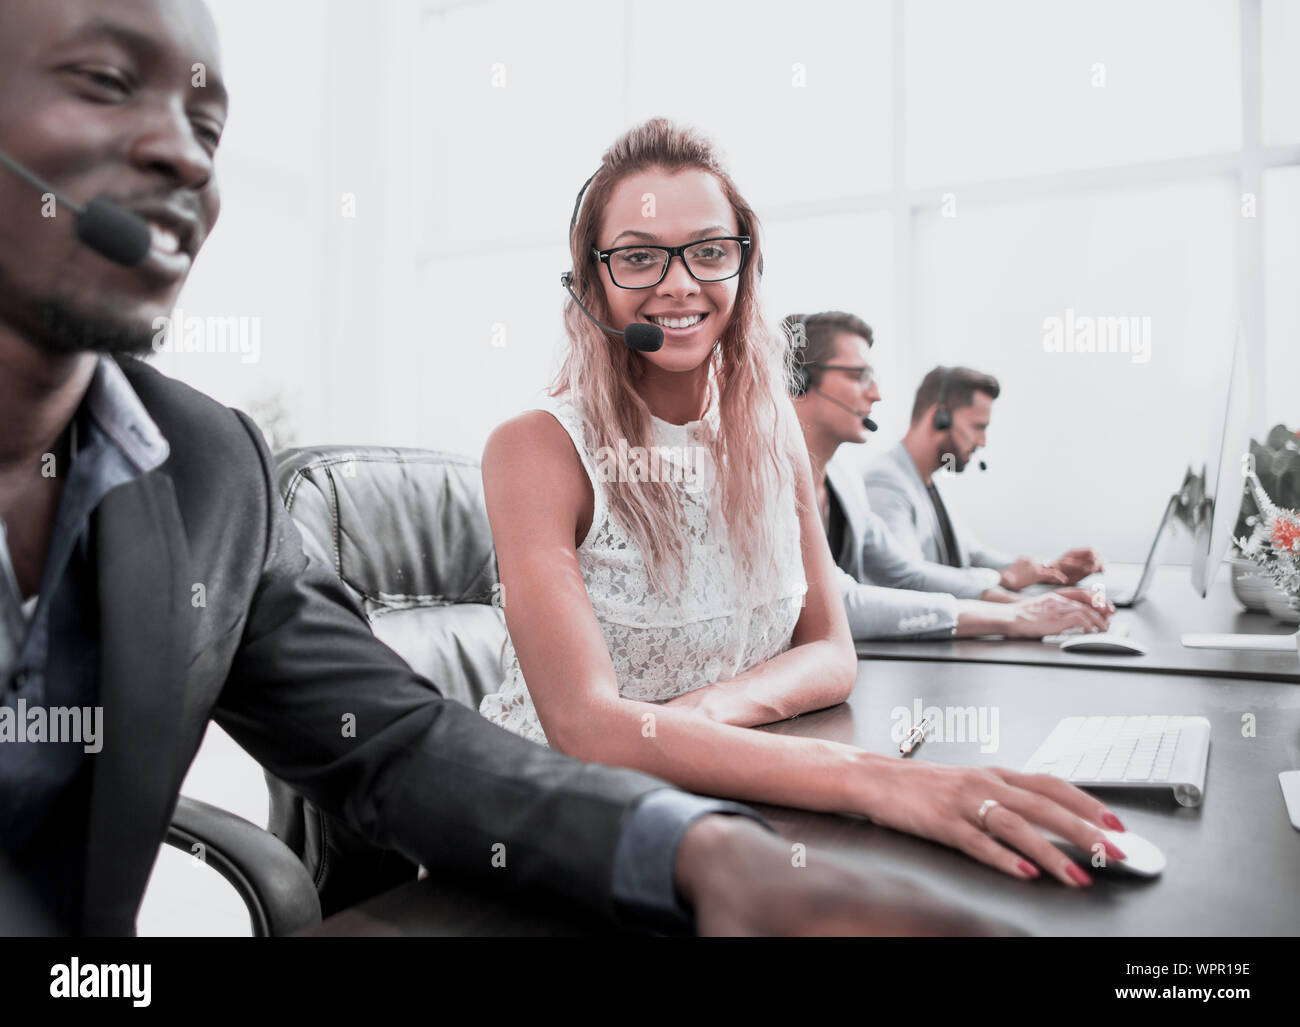 young business woman sitting at table in call center. photo with copy space Stock Photo